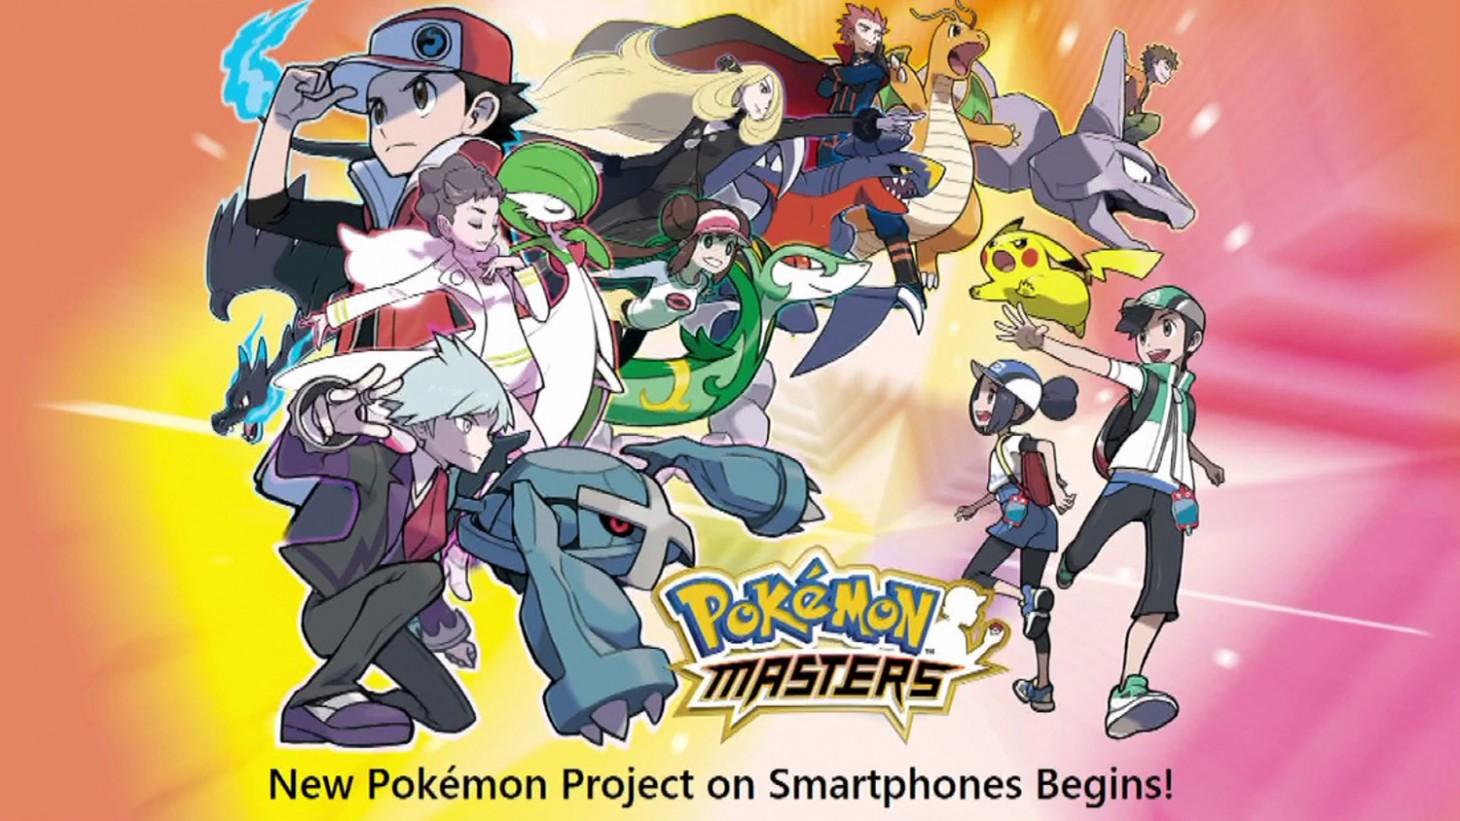 Pokémon Masters Is A Mobile Game That Will Let You Compete